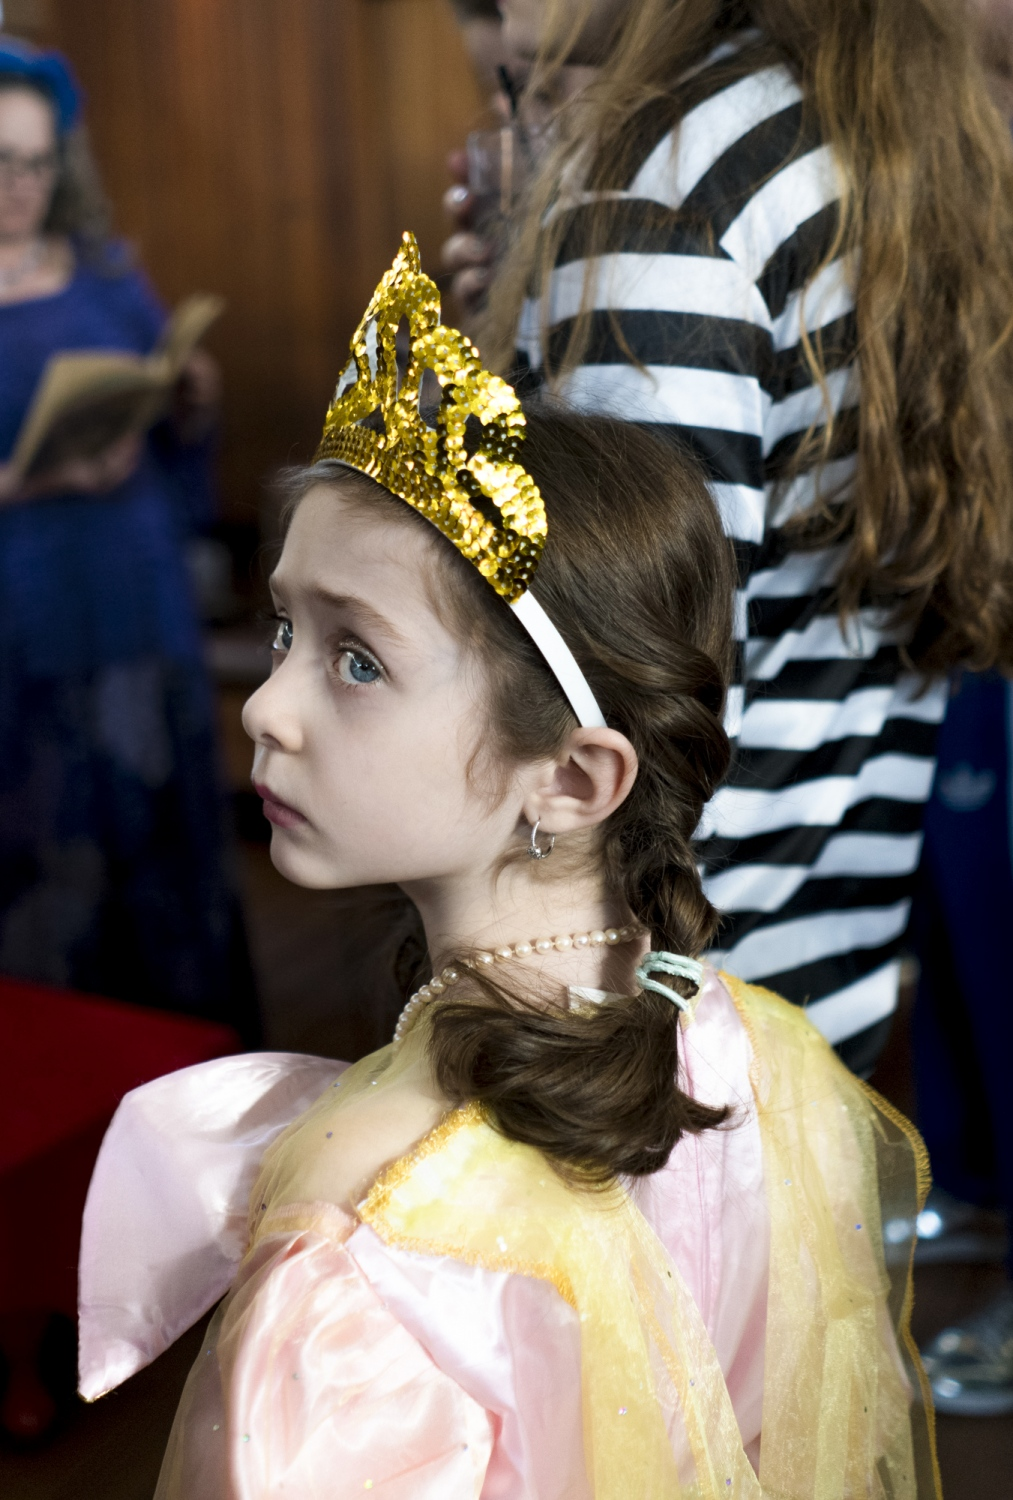 A young girl dressed as Esther listens to a reading of the Megillah at a Chabad Lubavitch party in the Chelsea neighbourhood of Manhattan. Children and adults dress up during Purim to celebrate the saving of the Jews from the evil figure of Haman who plotted against them.